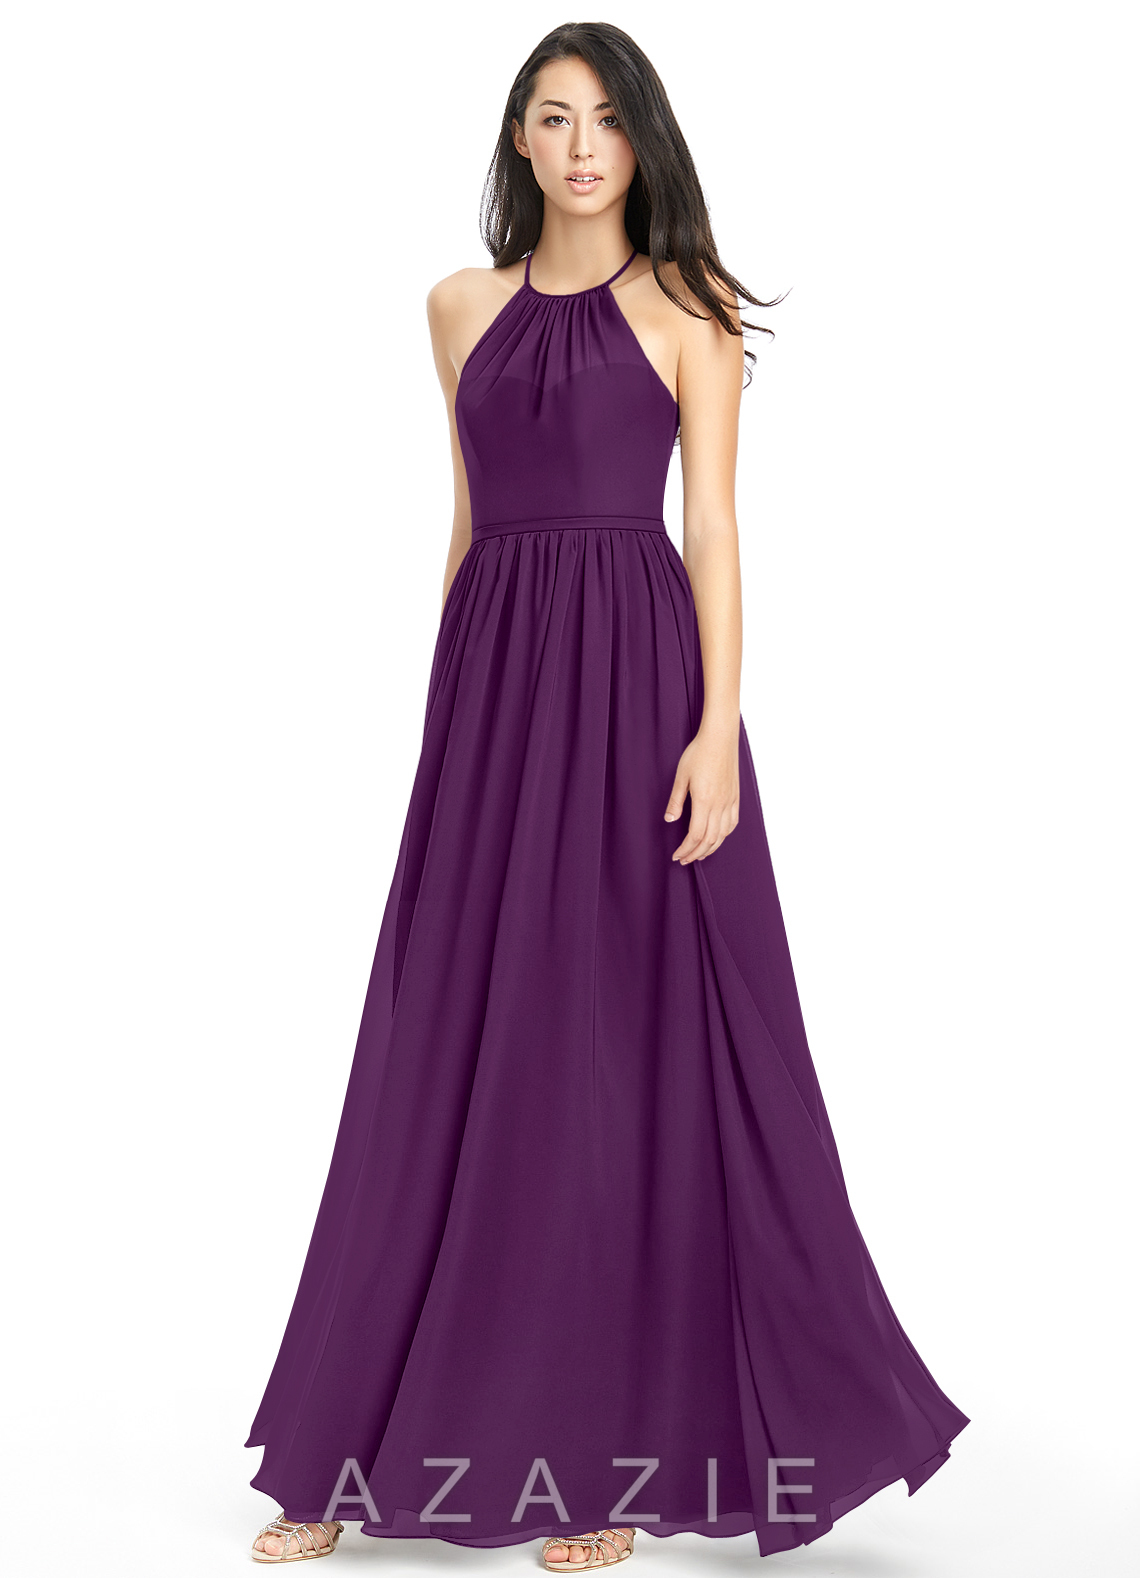 Azazie Kailyn Bridesmaid Dress | Azazie